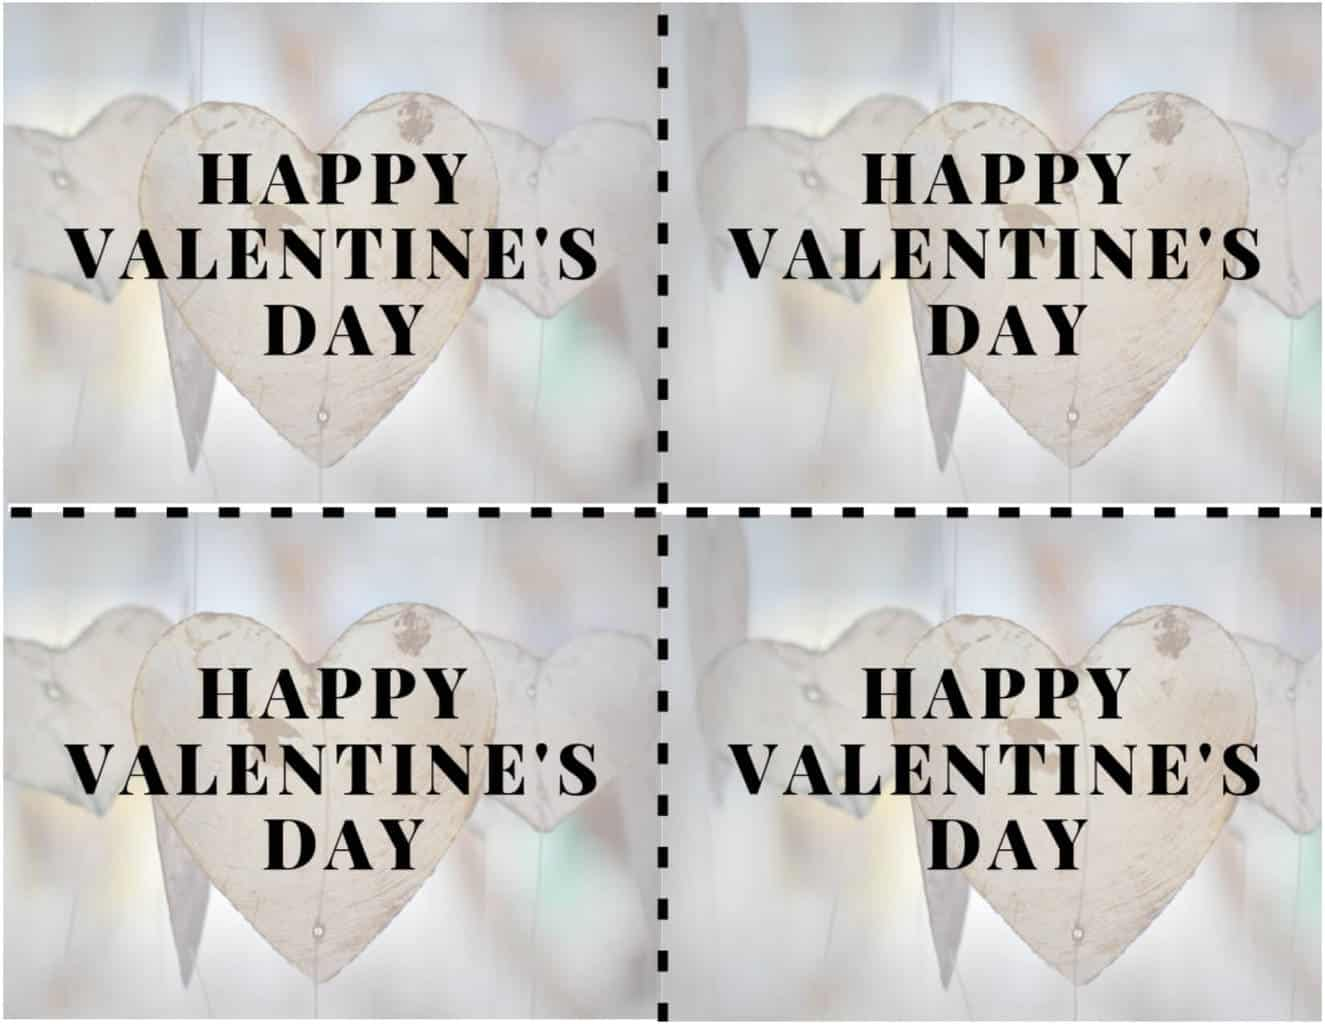 Rustic free valentine's day card